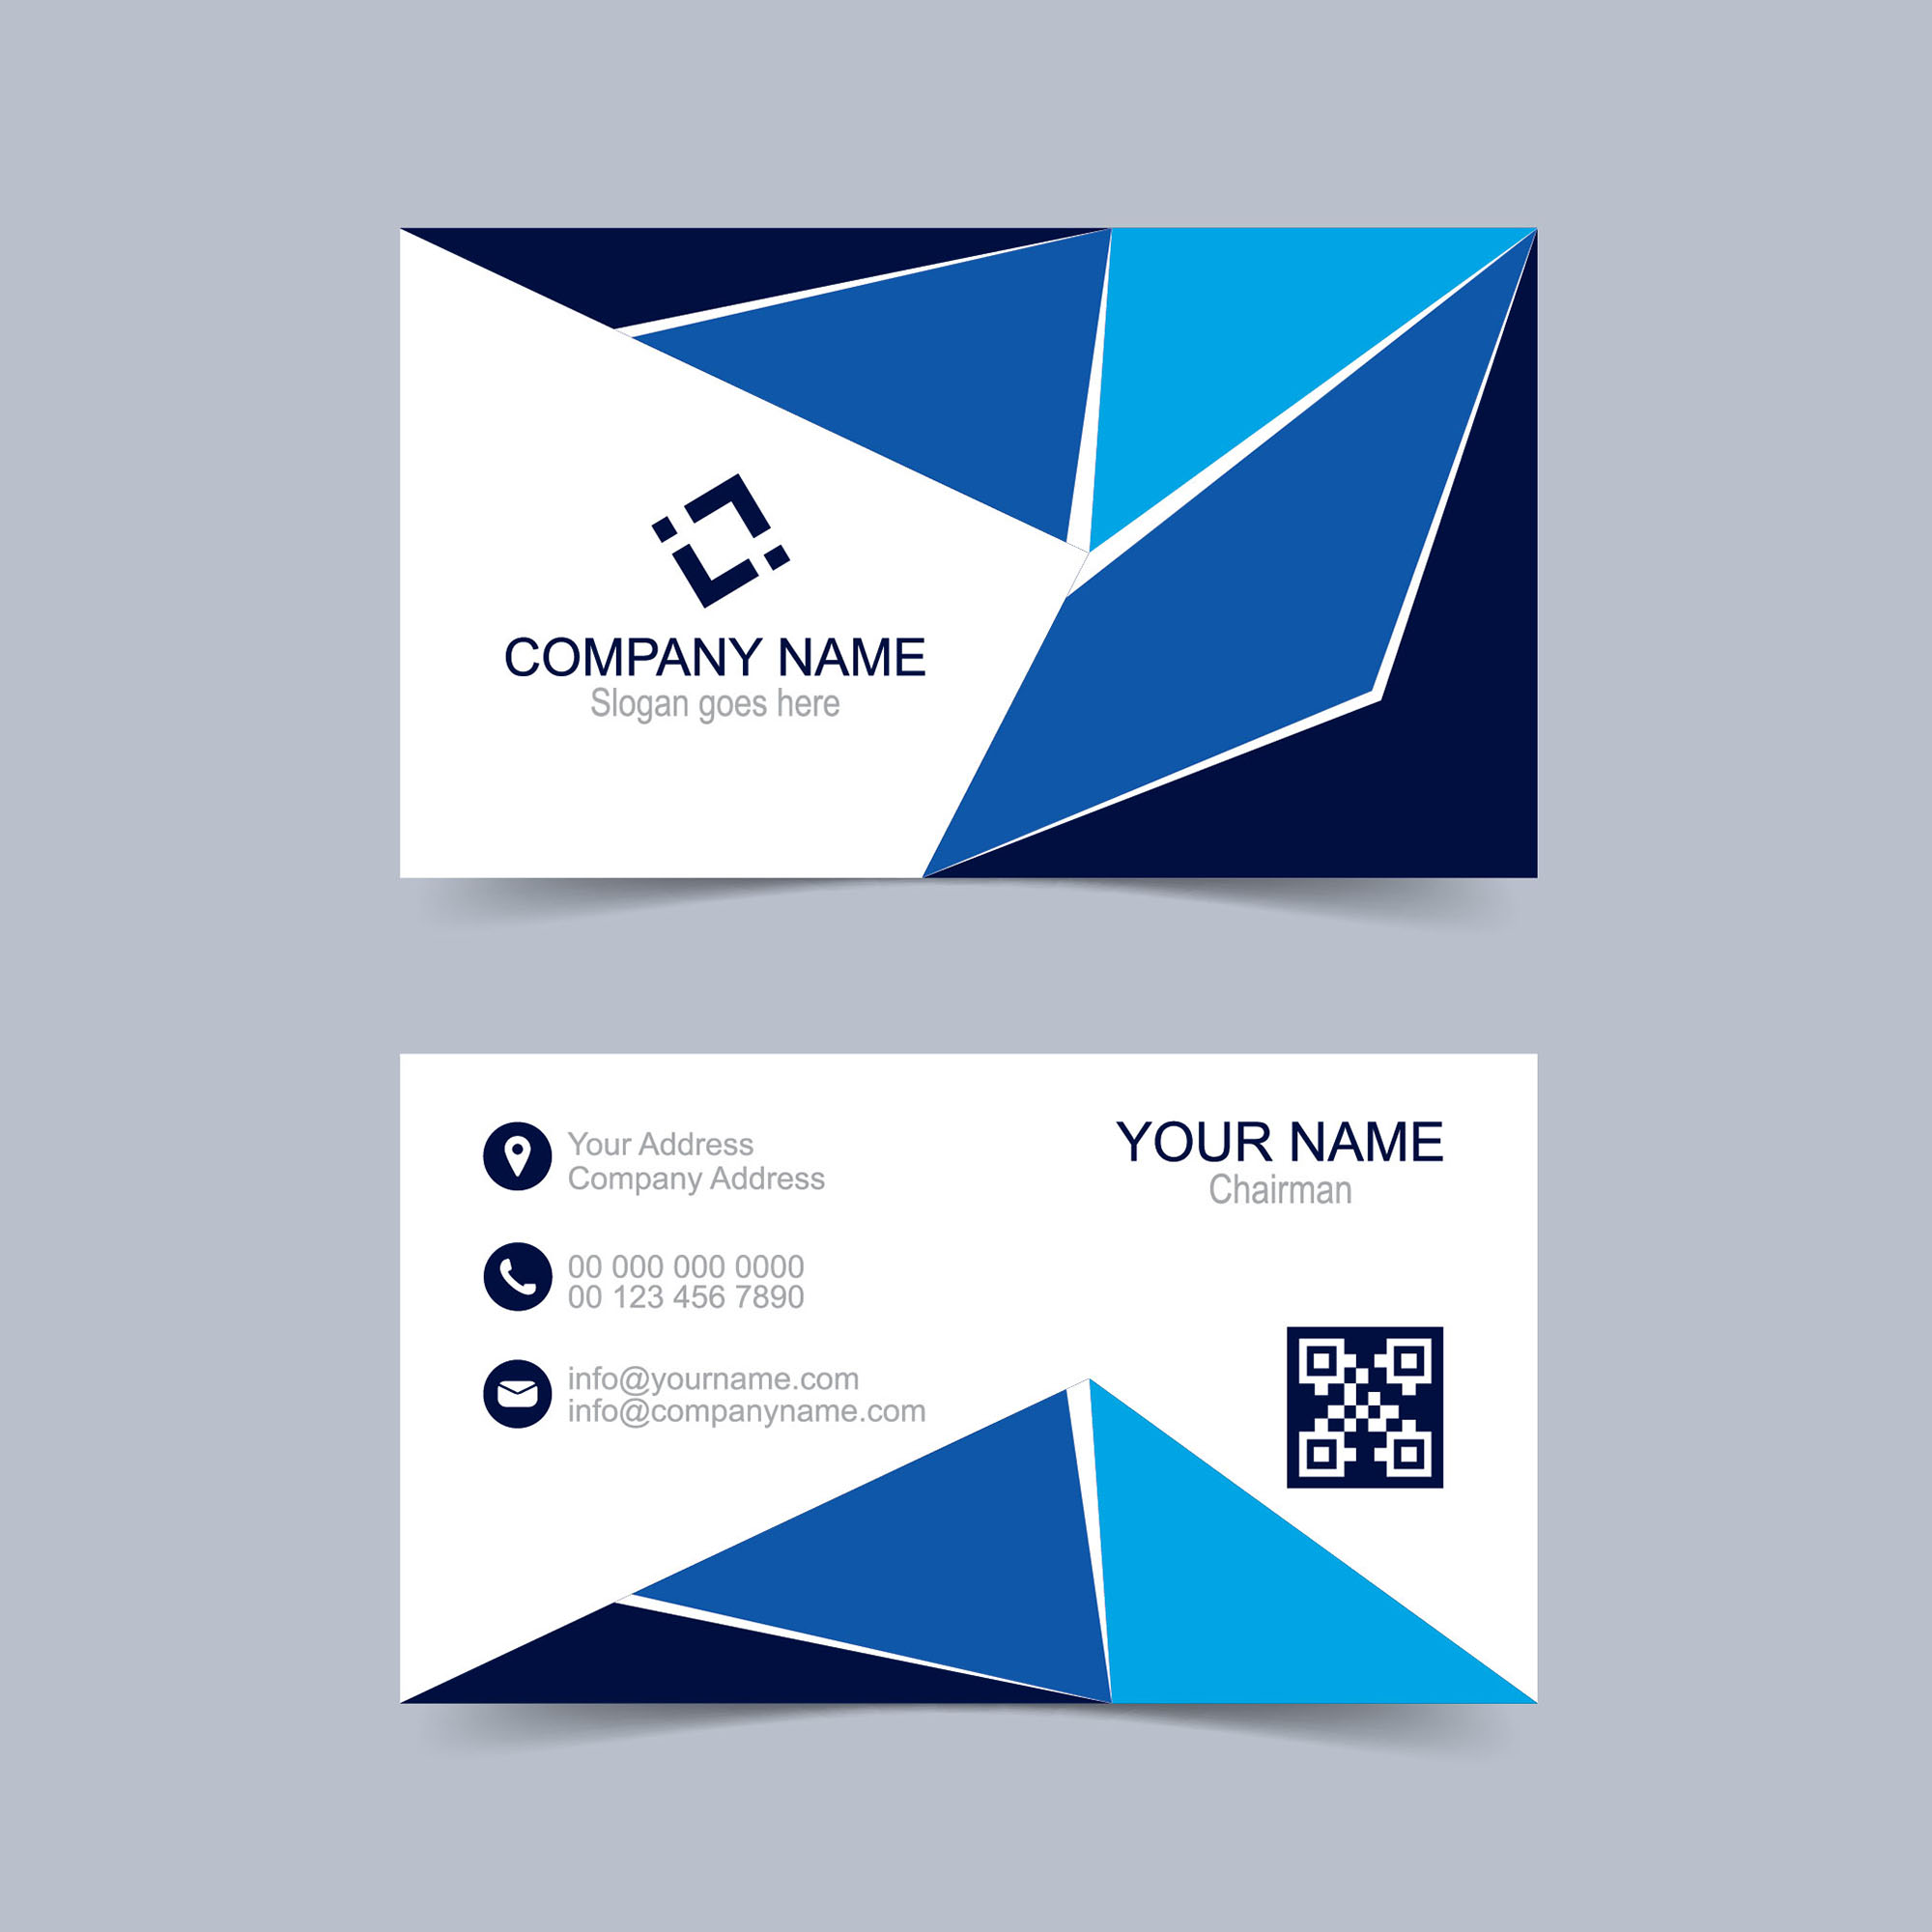 Creative business card design free download wisxi business card business cards business card design business card template design templates flashek Gallery